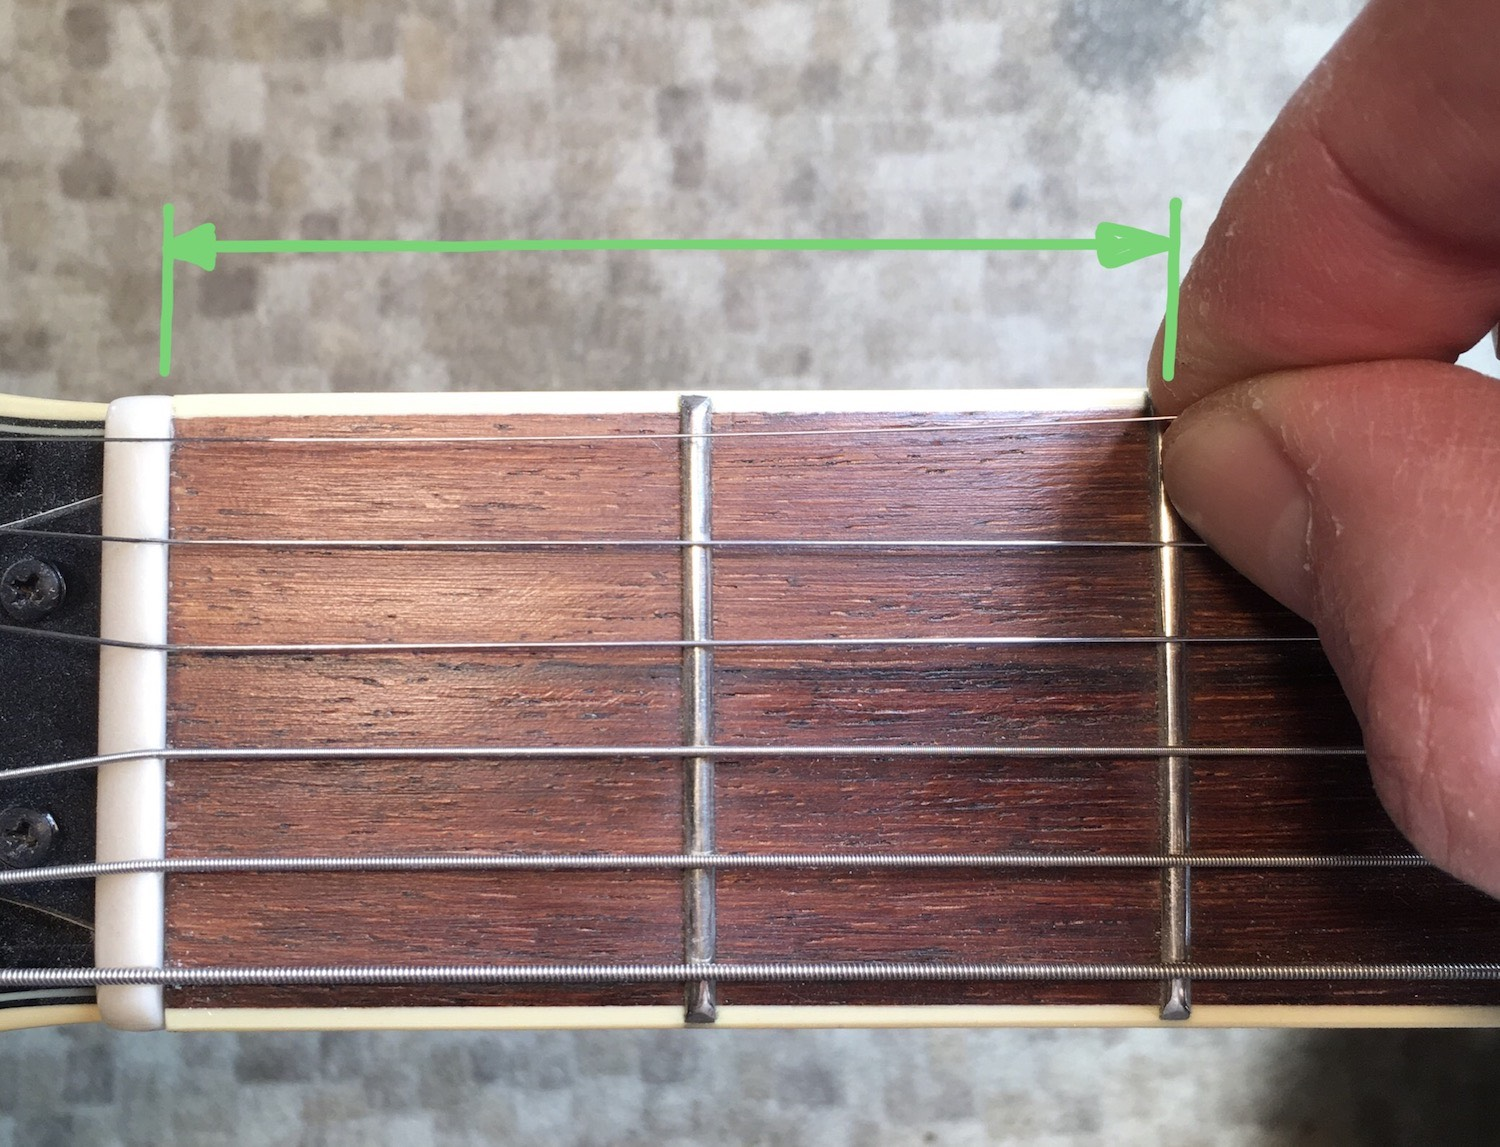 Guitar Stringing technique 4: Each string gets a little longer until you're here for the top string